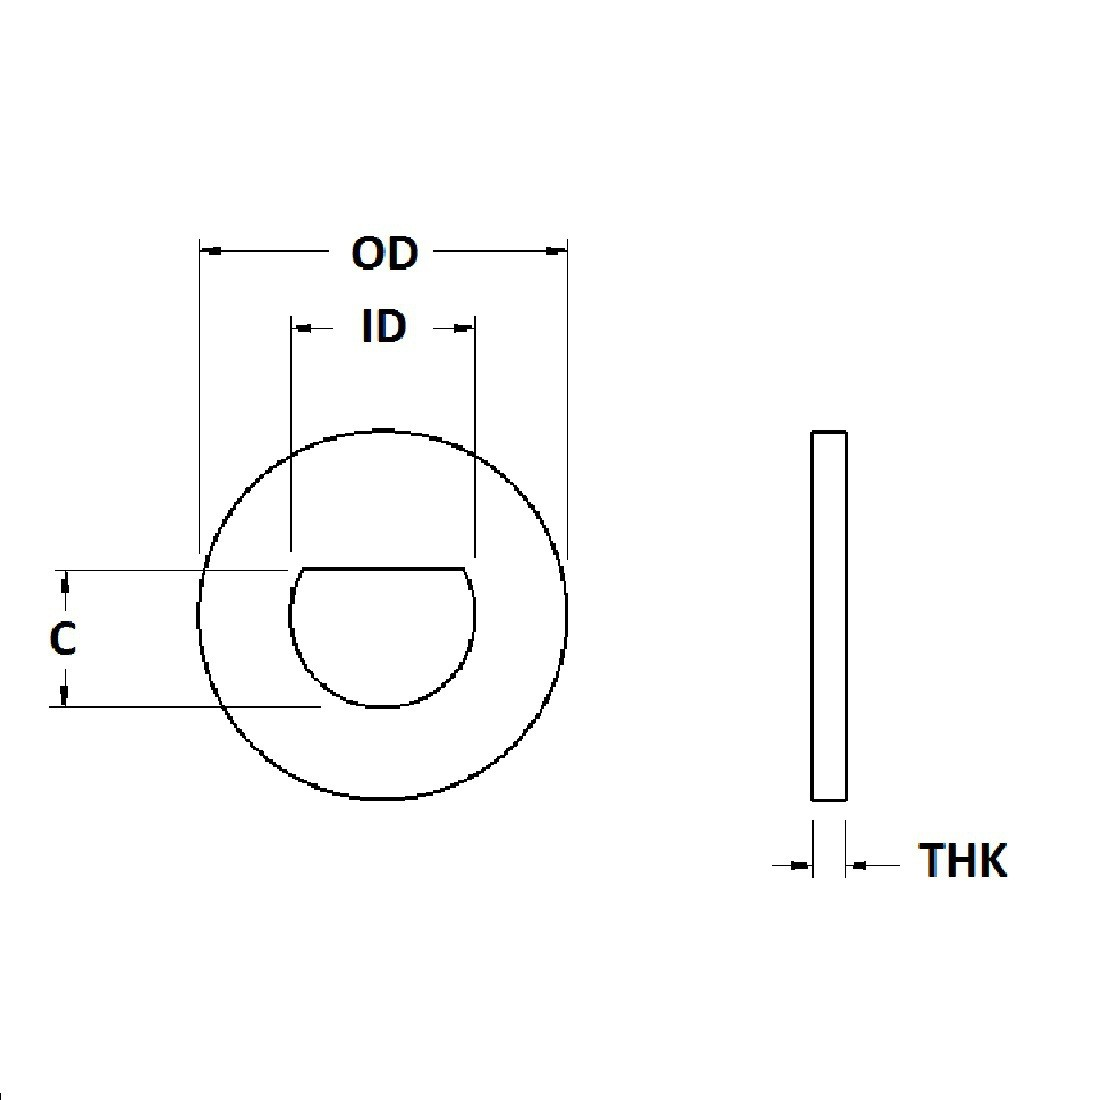 D-Shaped ID Washer - 1.005 ID, 2.182 OD, 0.145 Thick, Low Carbon Steel - Soft